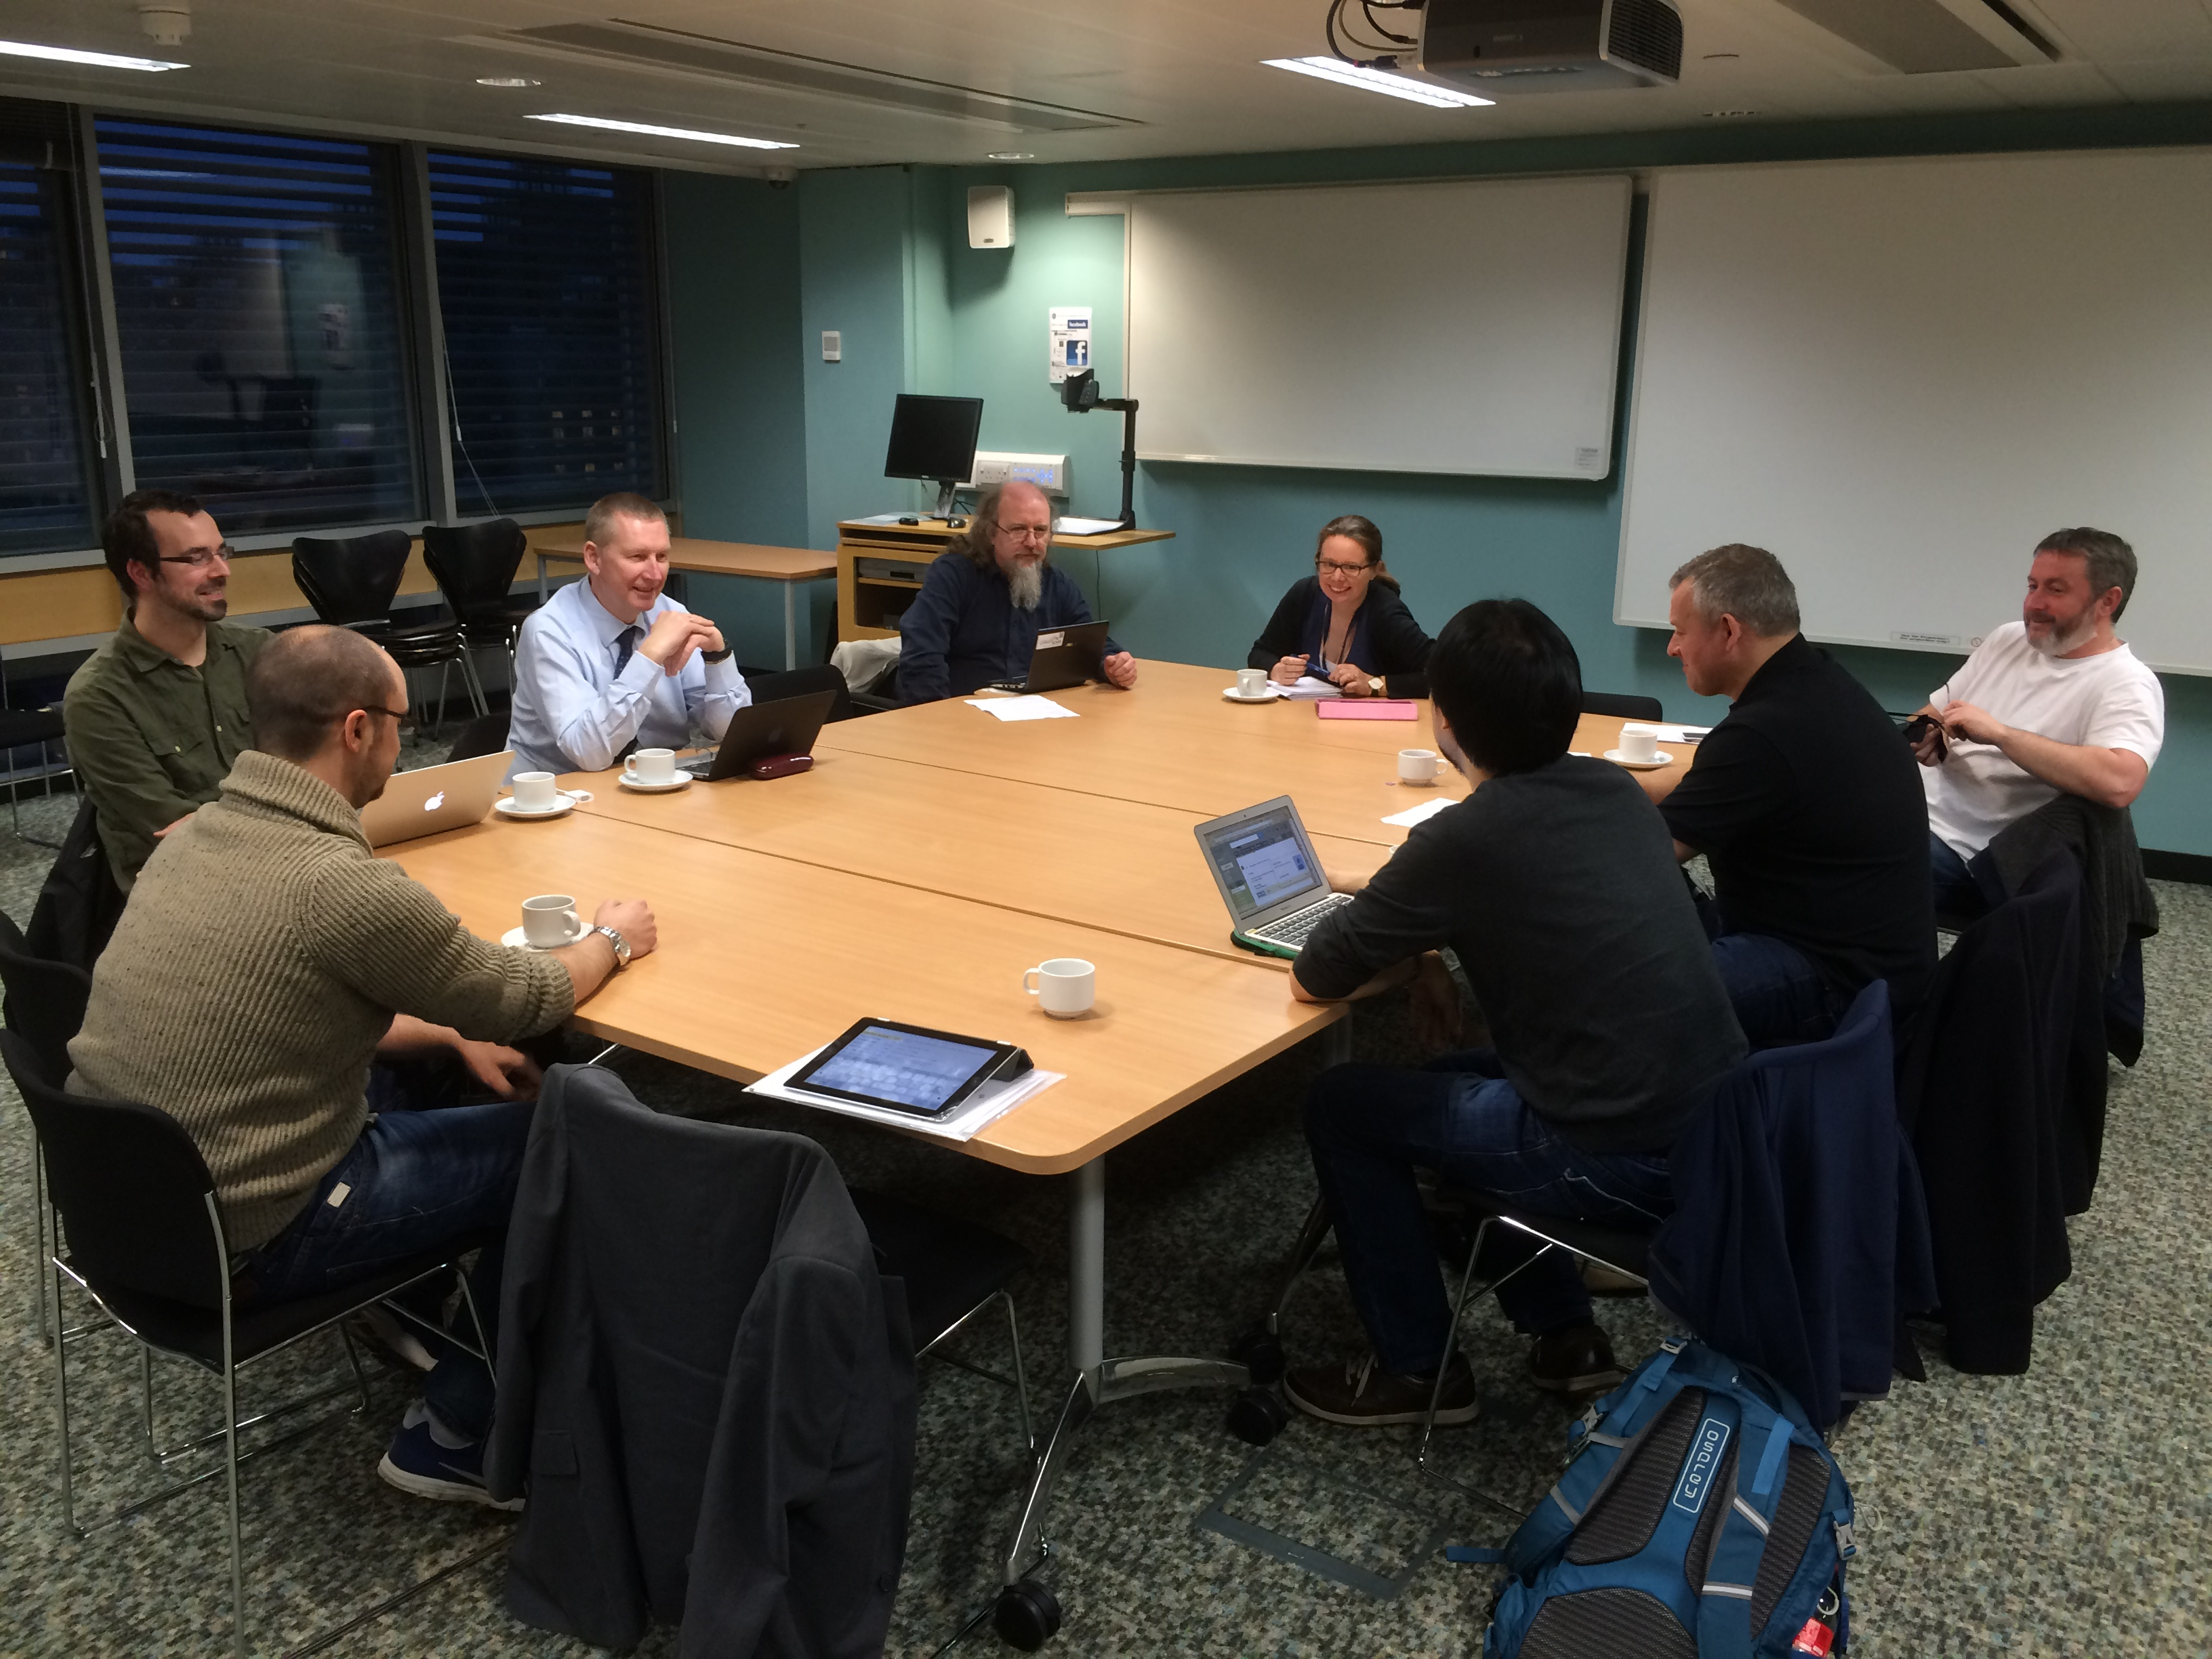 SSI_and_IS_software meeting_dec2014